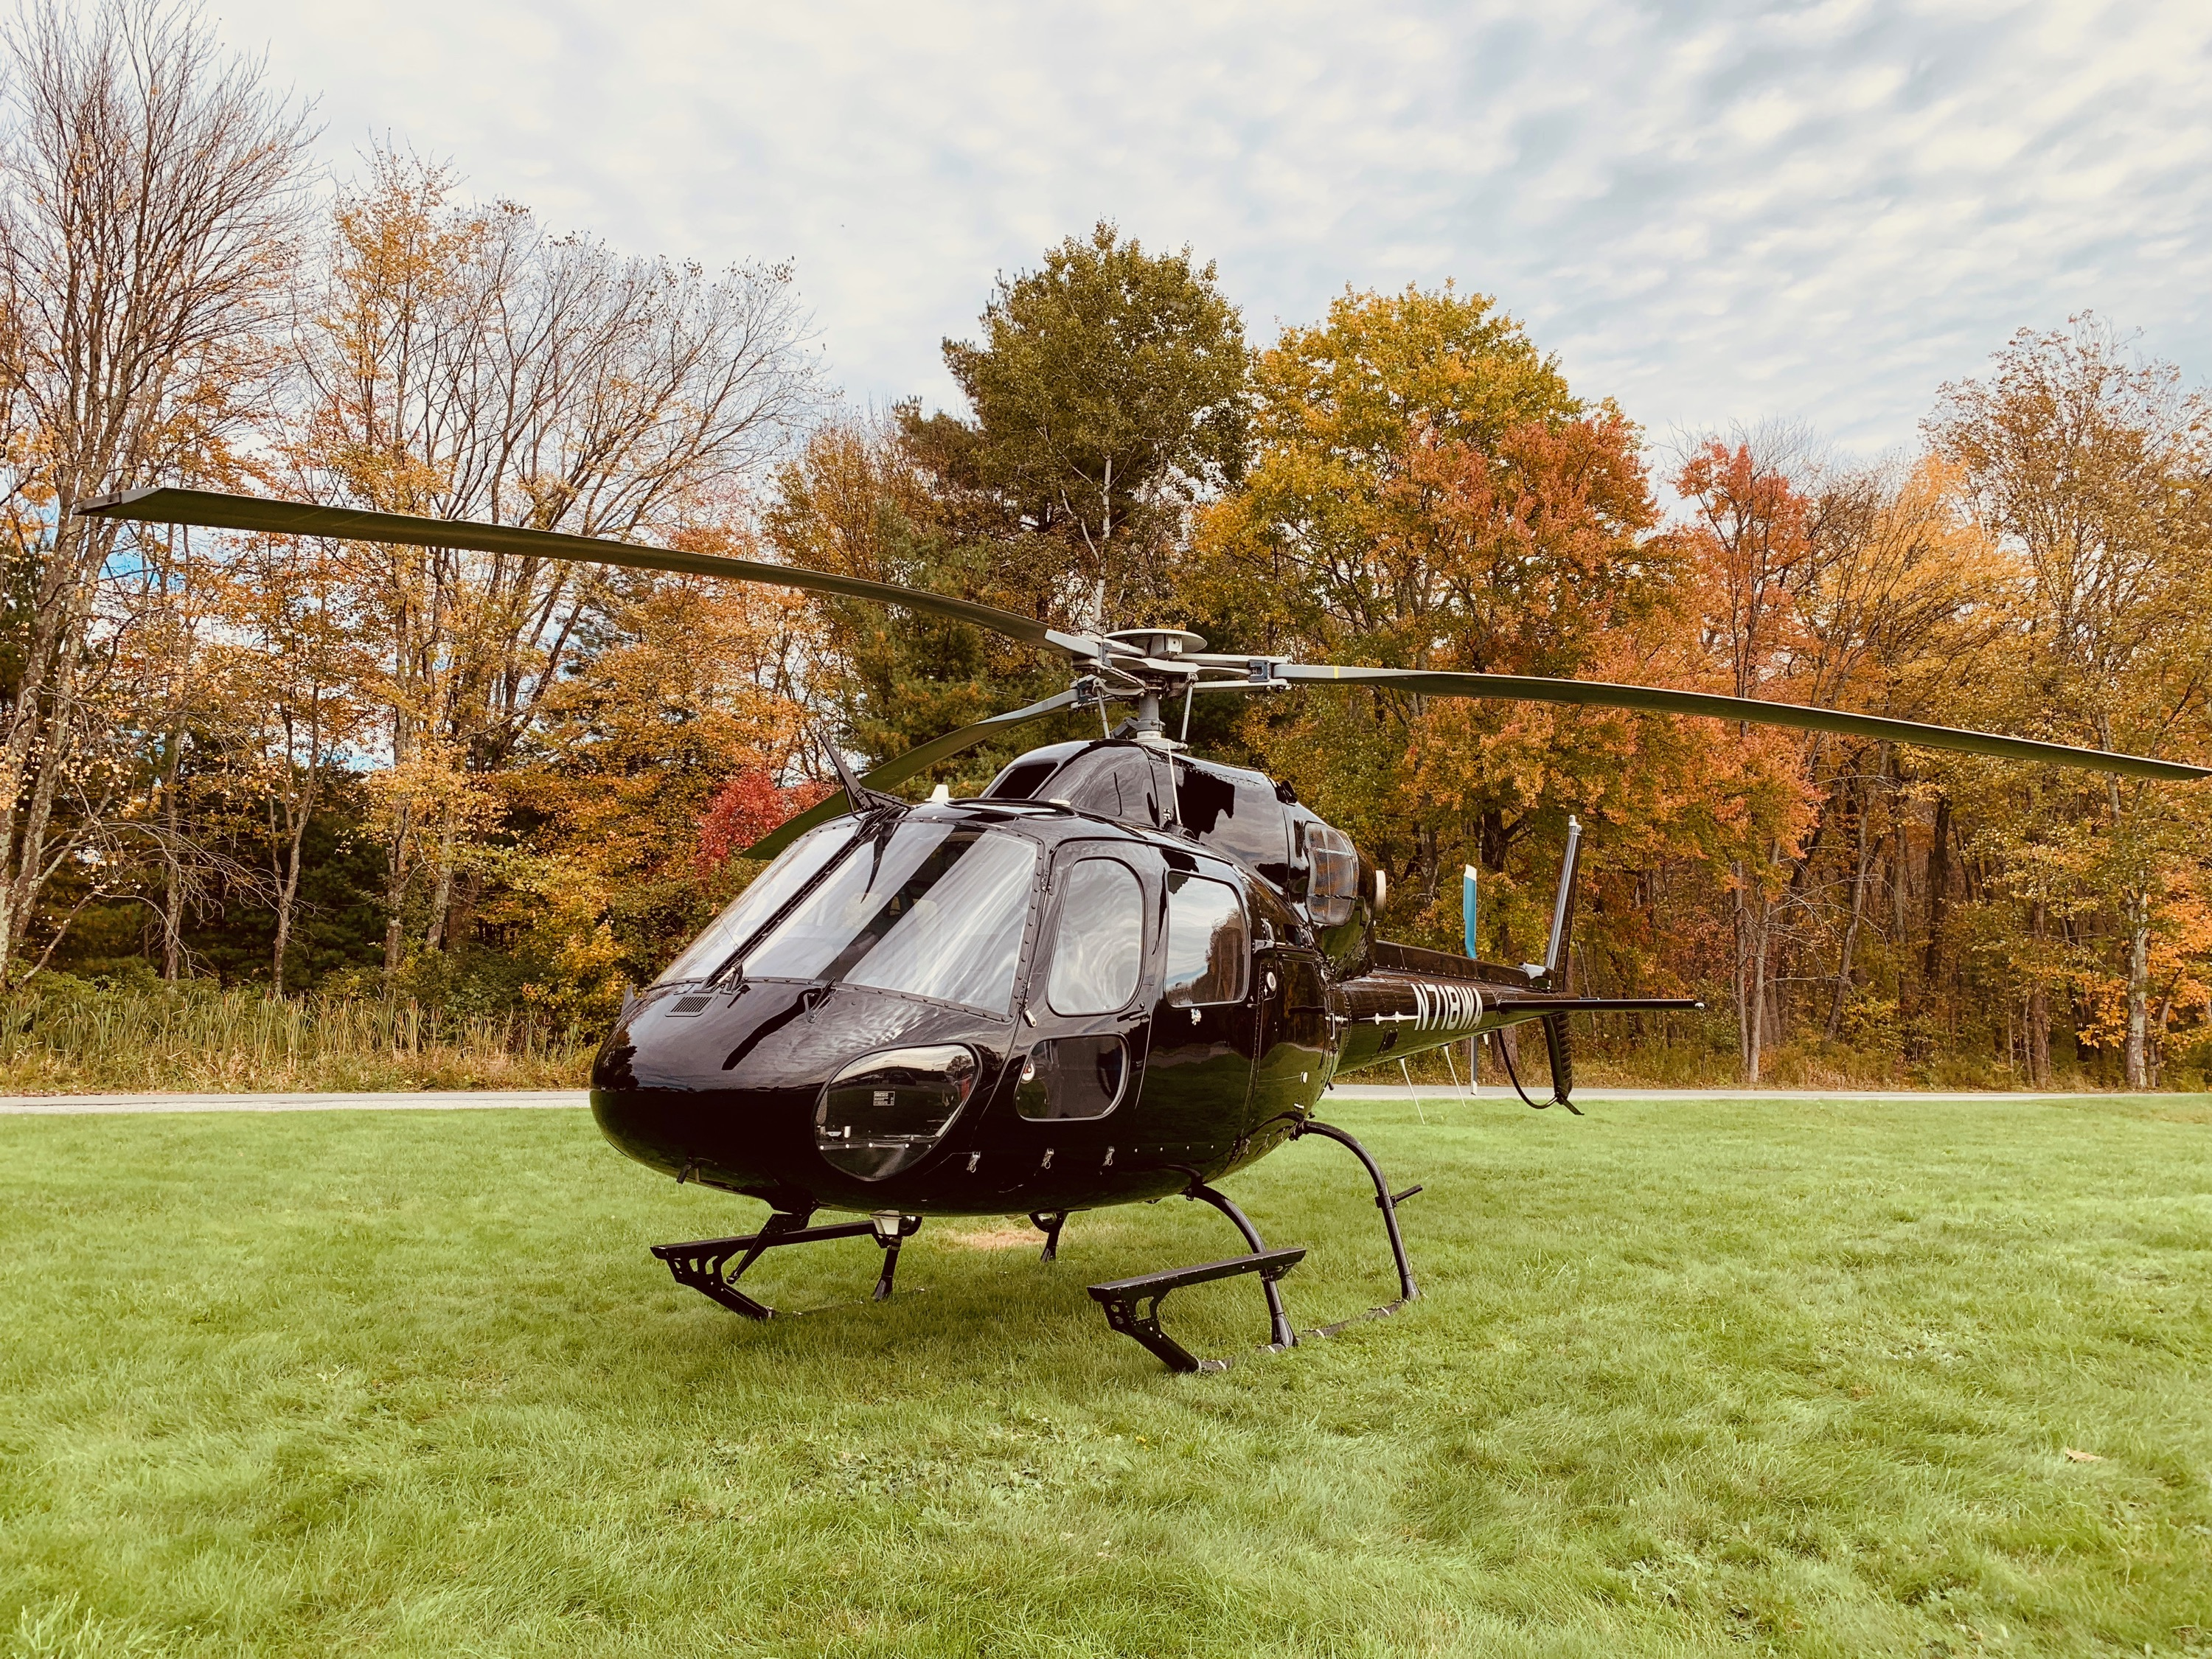 black helicopter on a grass field about to take off with trees in the background during fall